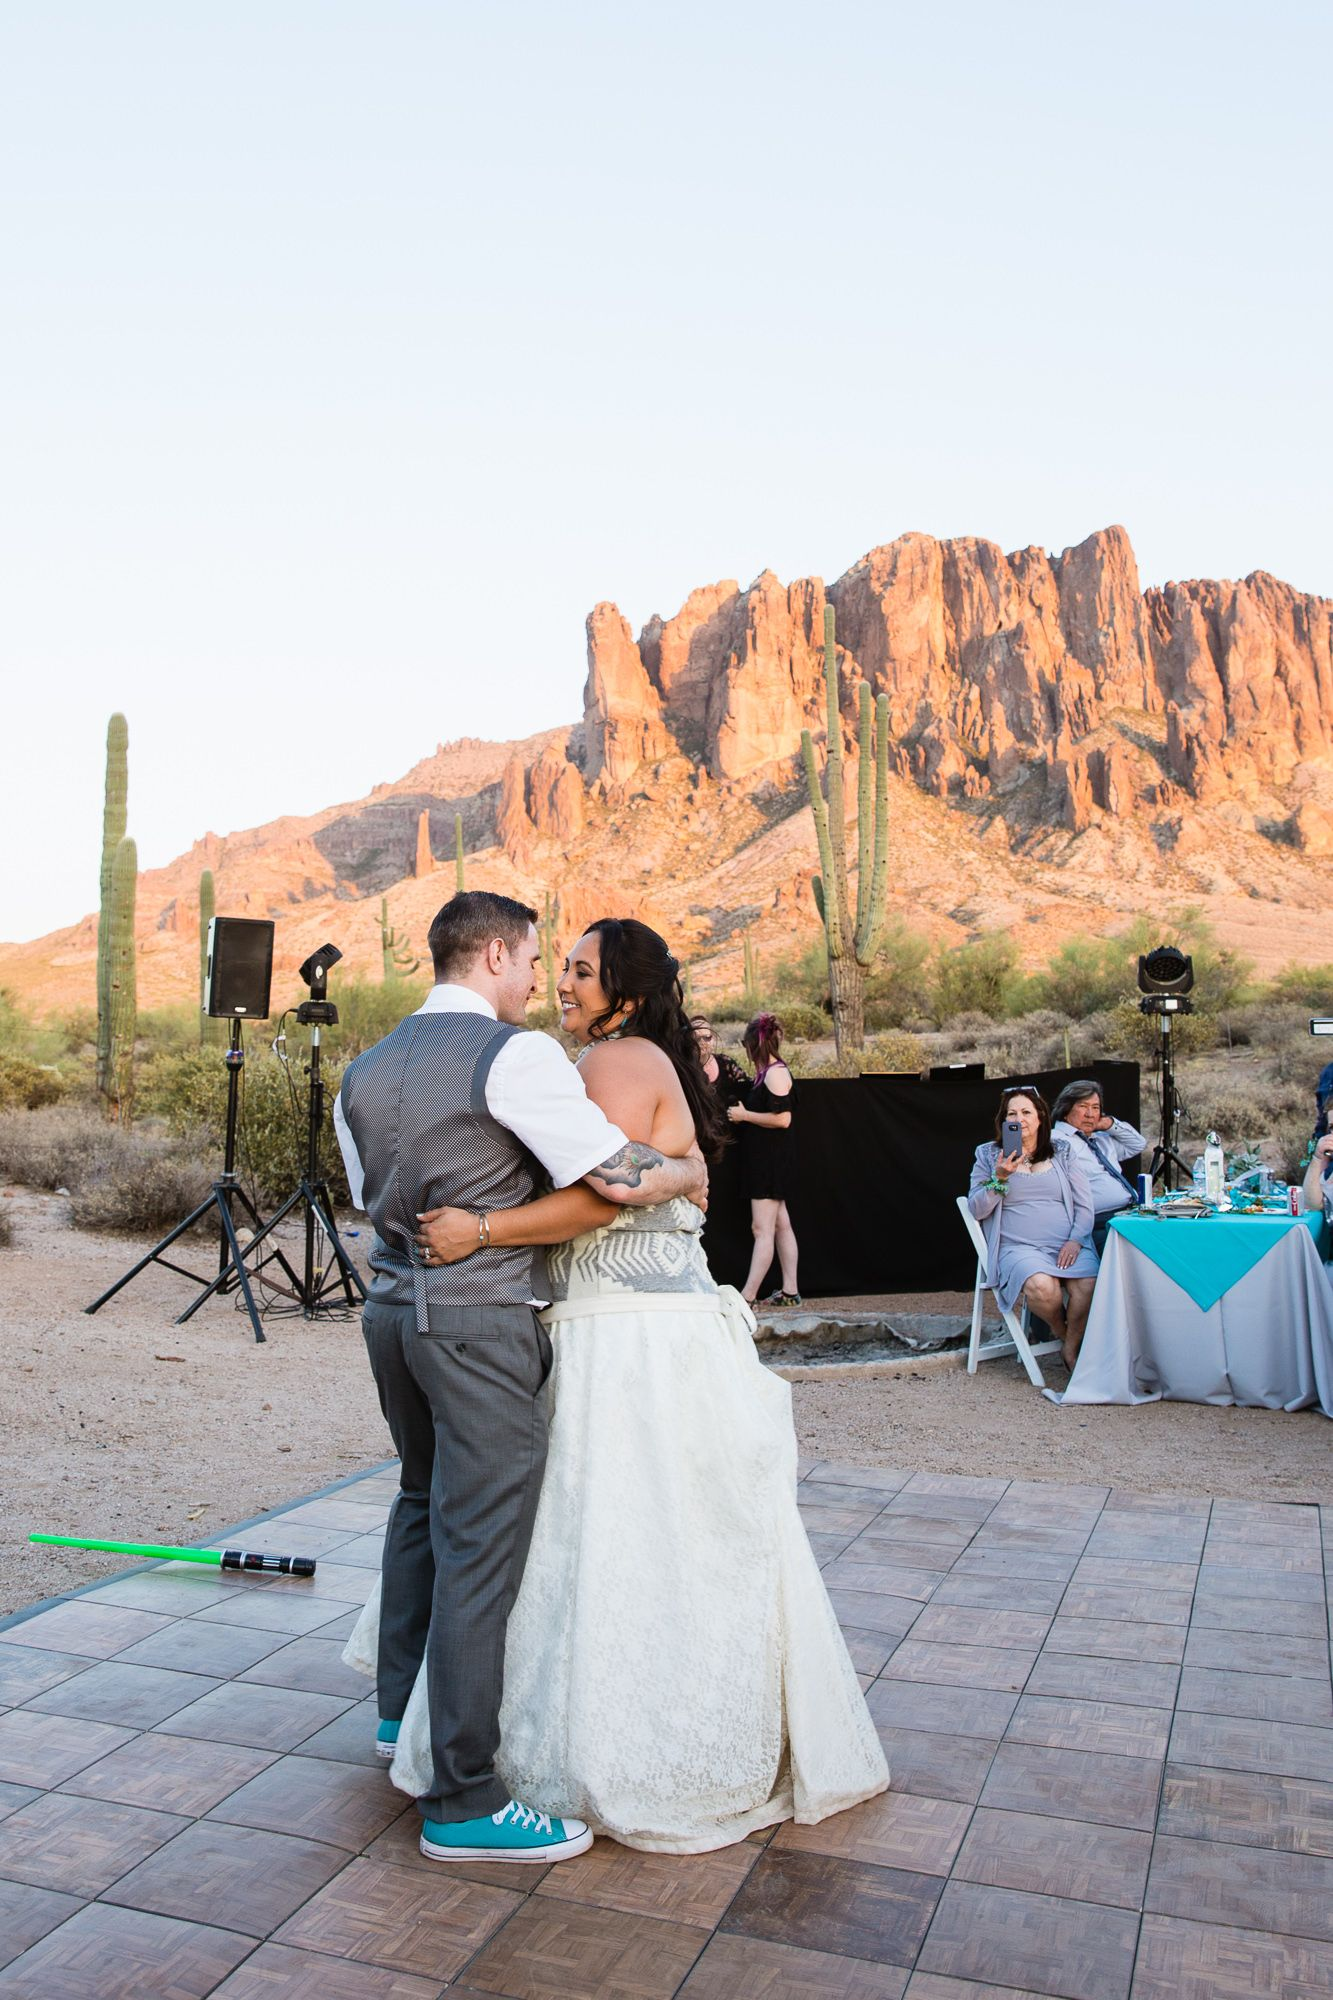 Bride And Grooms First Dance At Their Lost Dutchman State Park Wedding Reception By Arizona